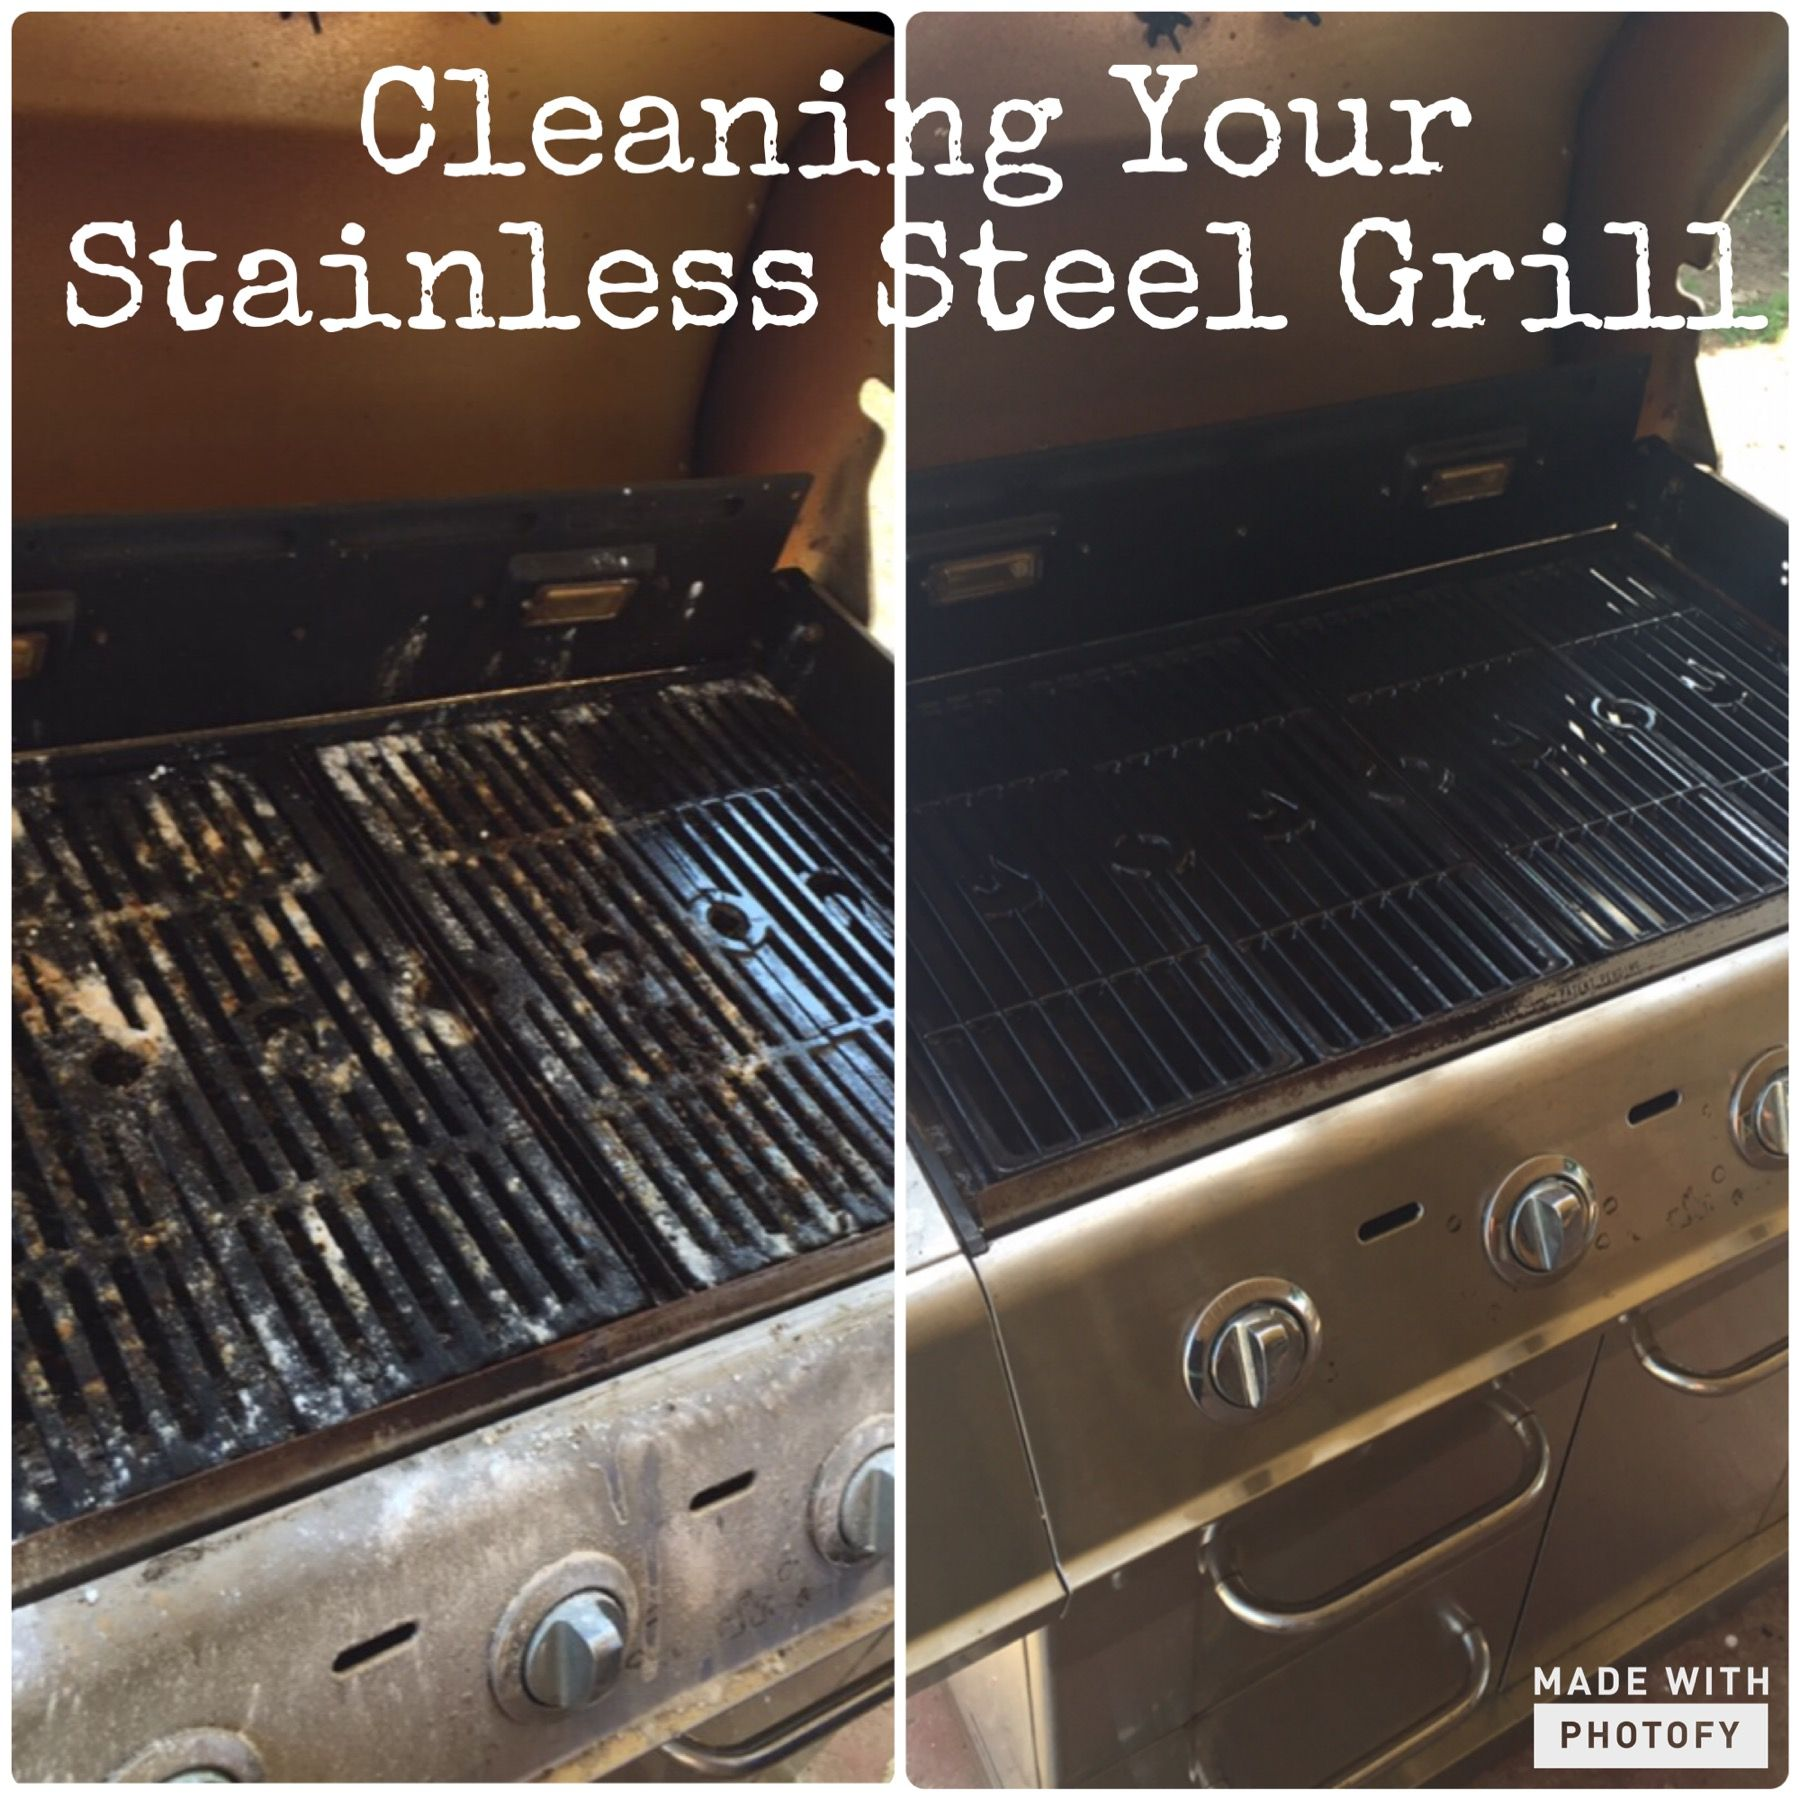 How To Clean Stainless Steal Cleaning Your Stainless Steel Grill Stainless Steel Grill